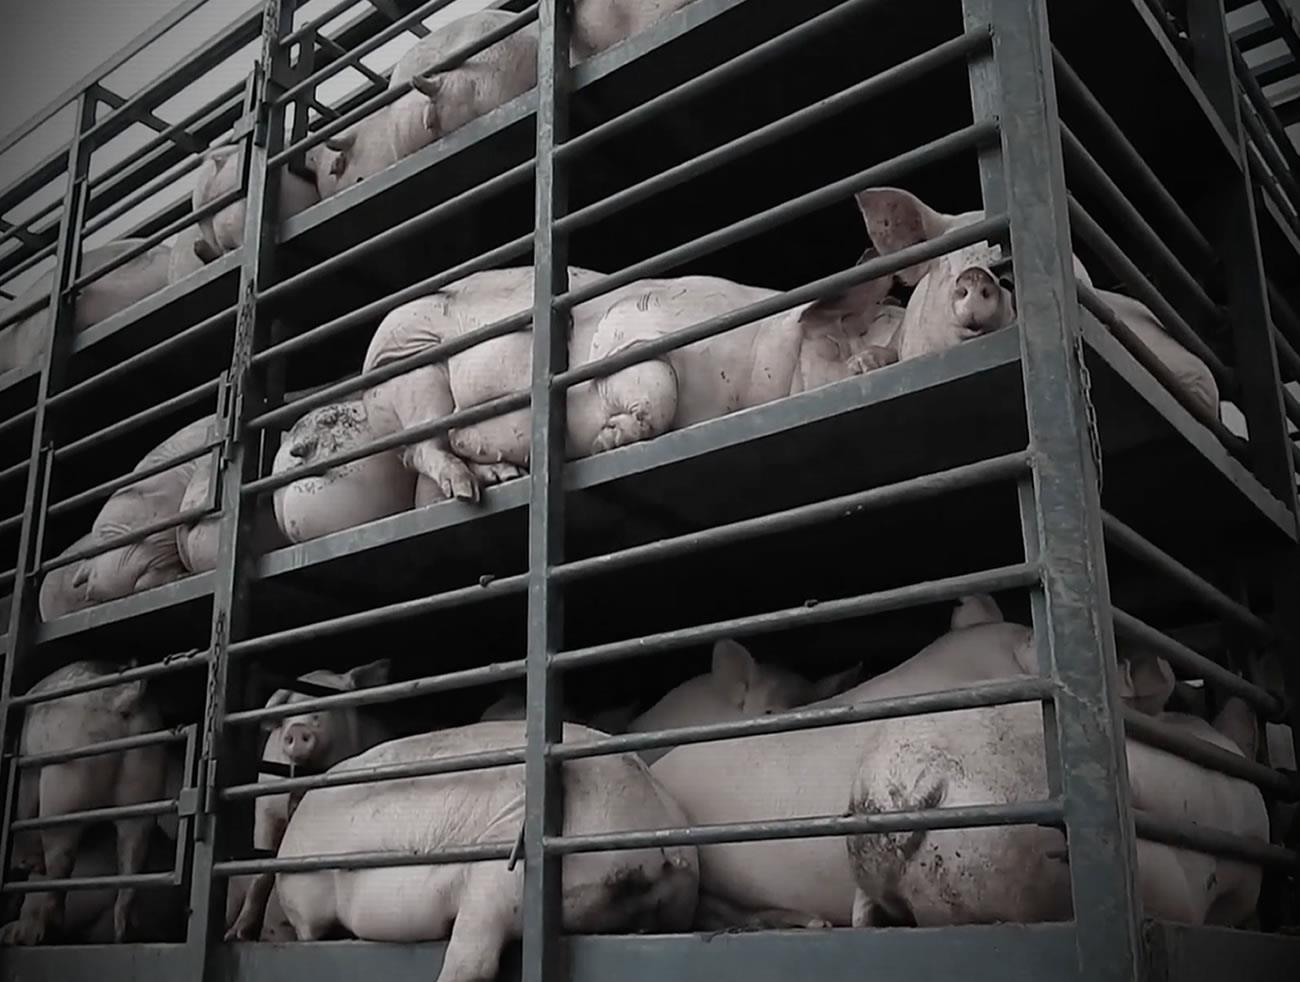 Campanha global da Mercy For Animals é inspirada nos protocolos da OMS